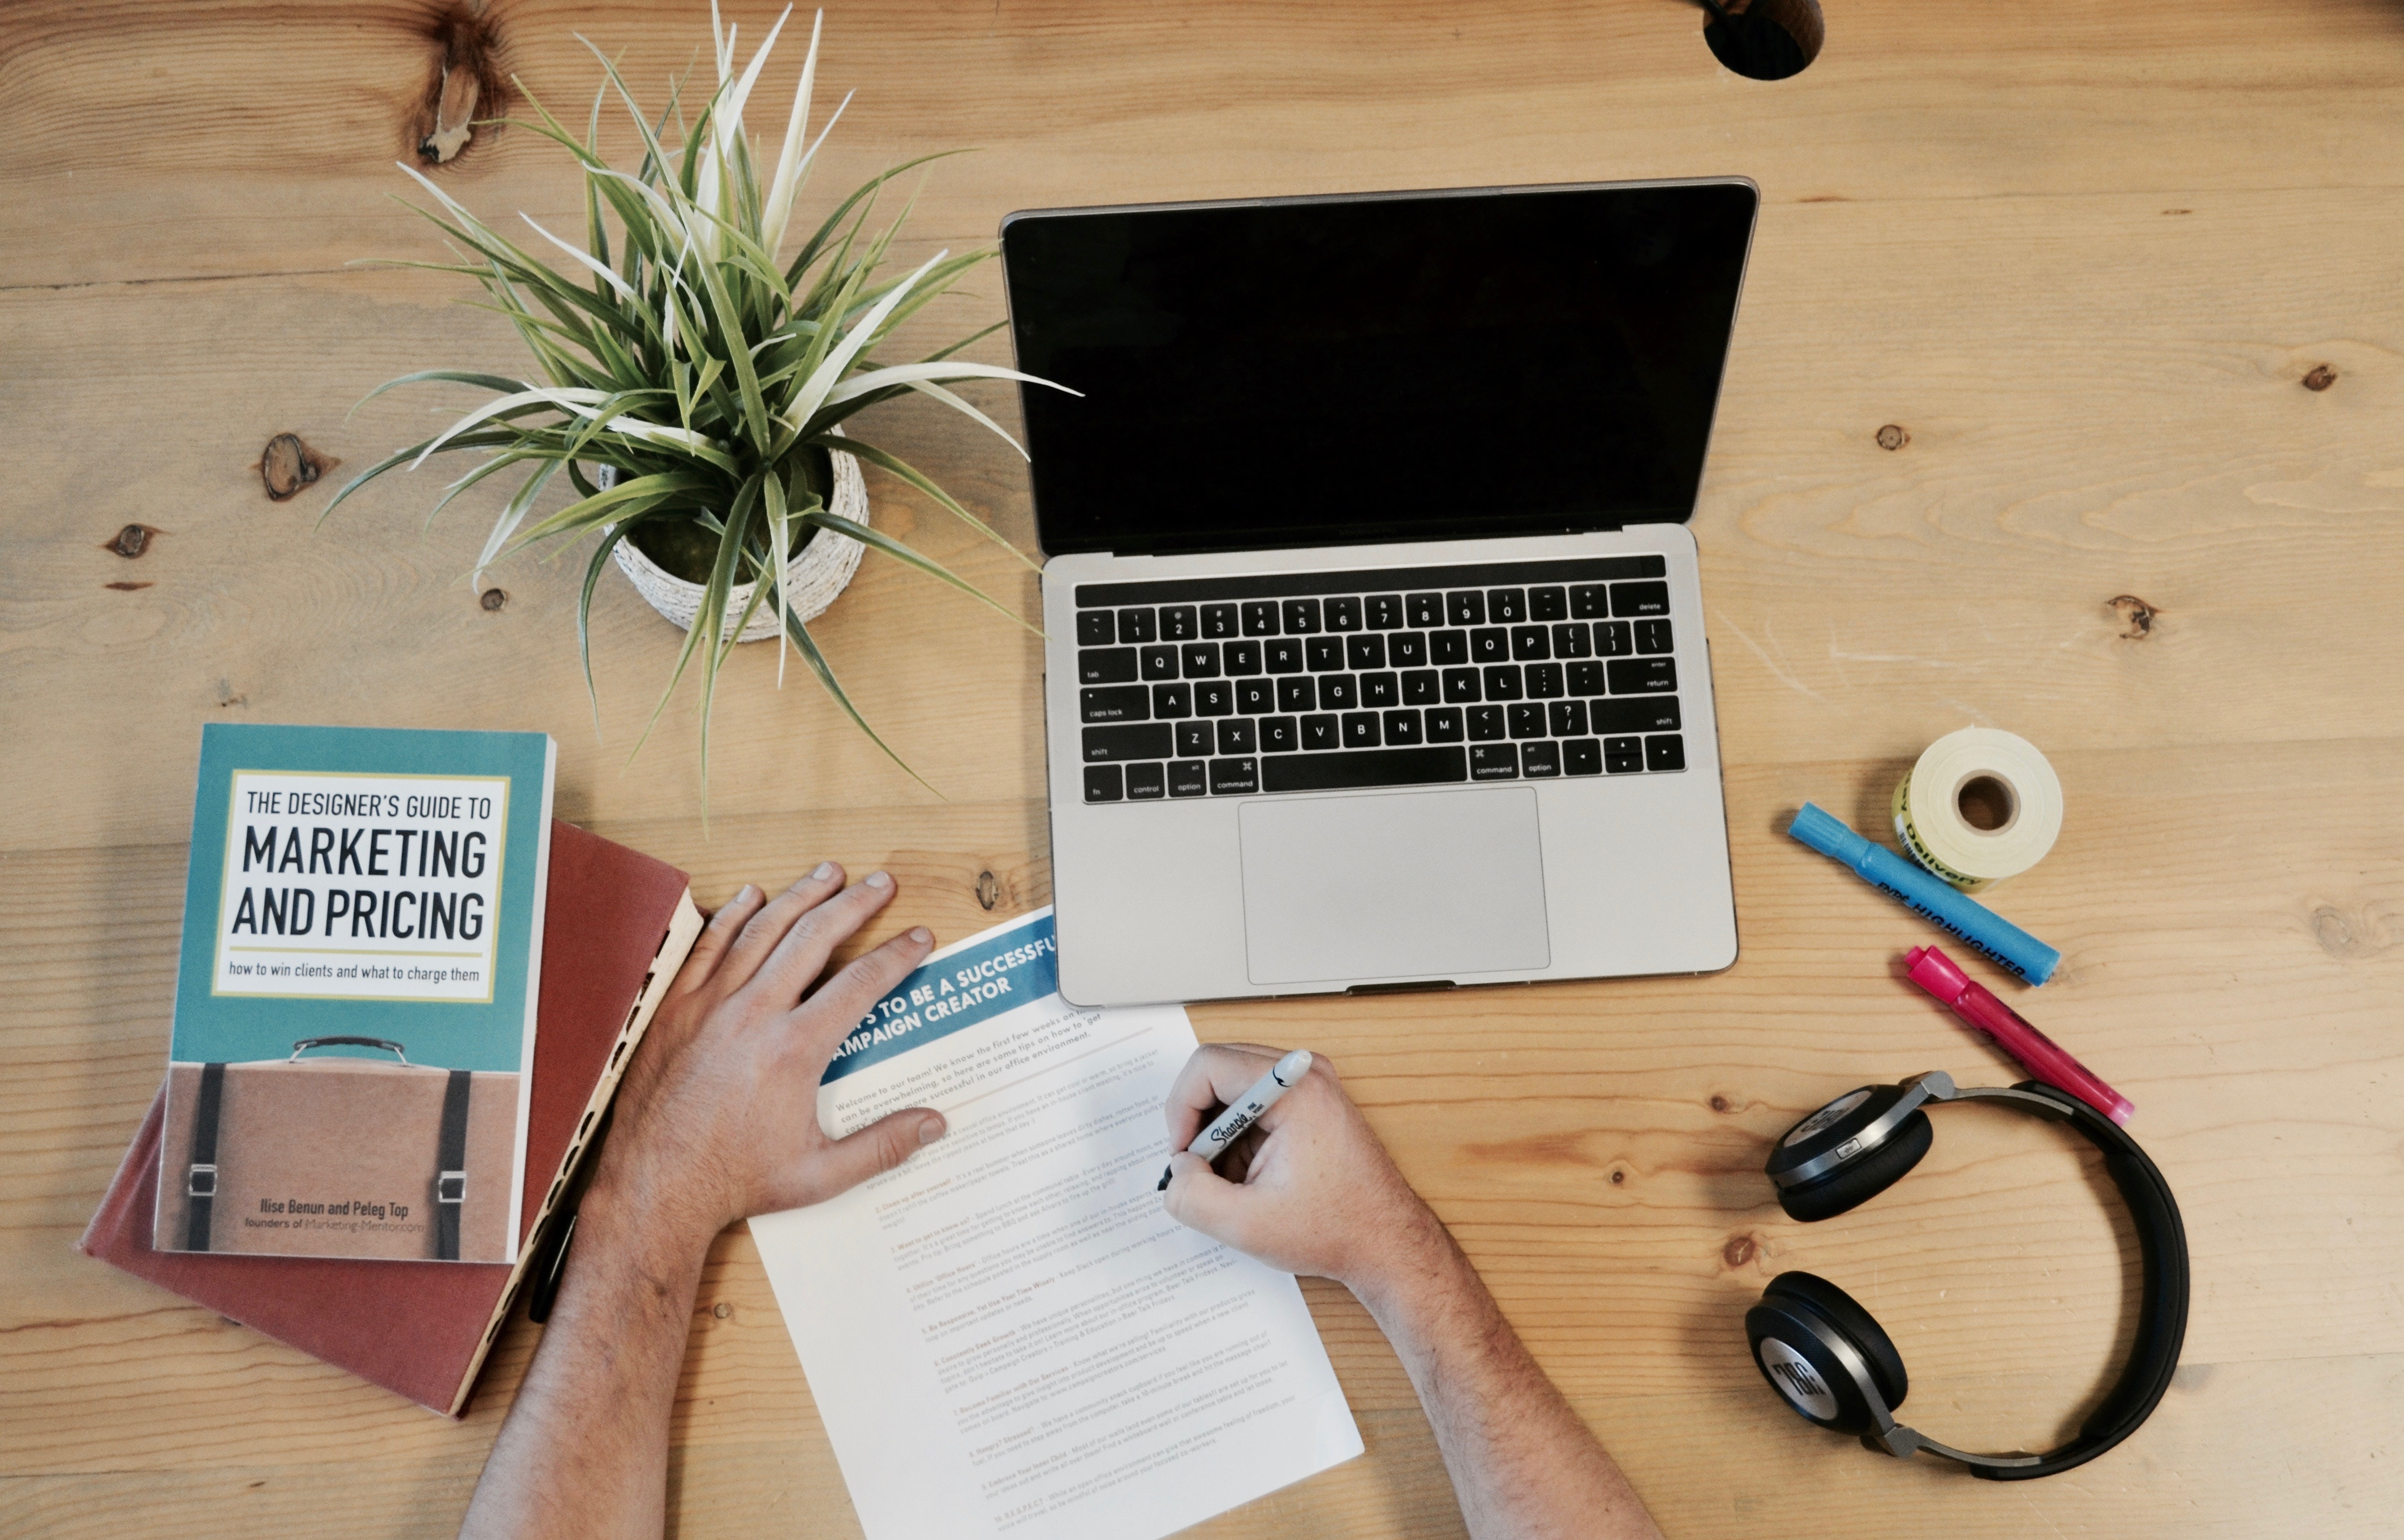 How to Use Both Content Marketing and Copywriting | Why You Need Content Marketing and Copywriting | How to Use Content Marketing and Copywriting as Part of Your Marketing Strategy | Marketing Using Copywriting and Content Writing